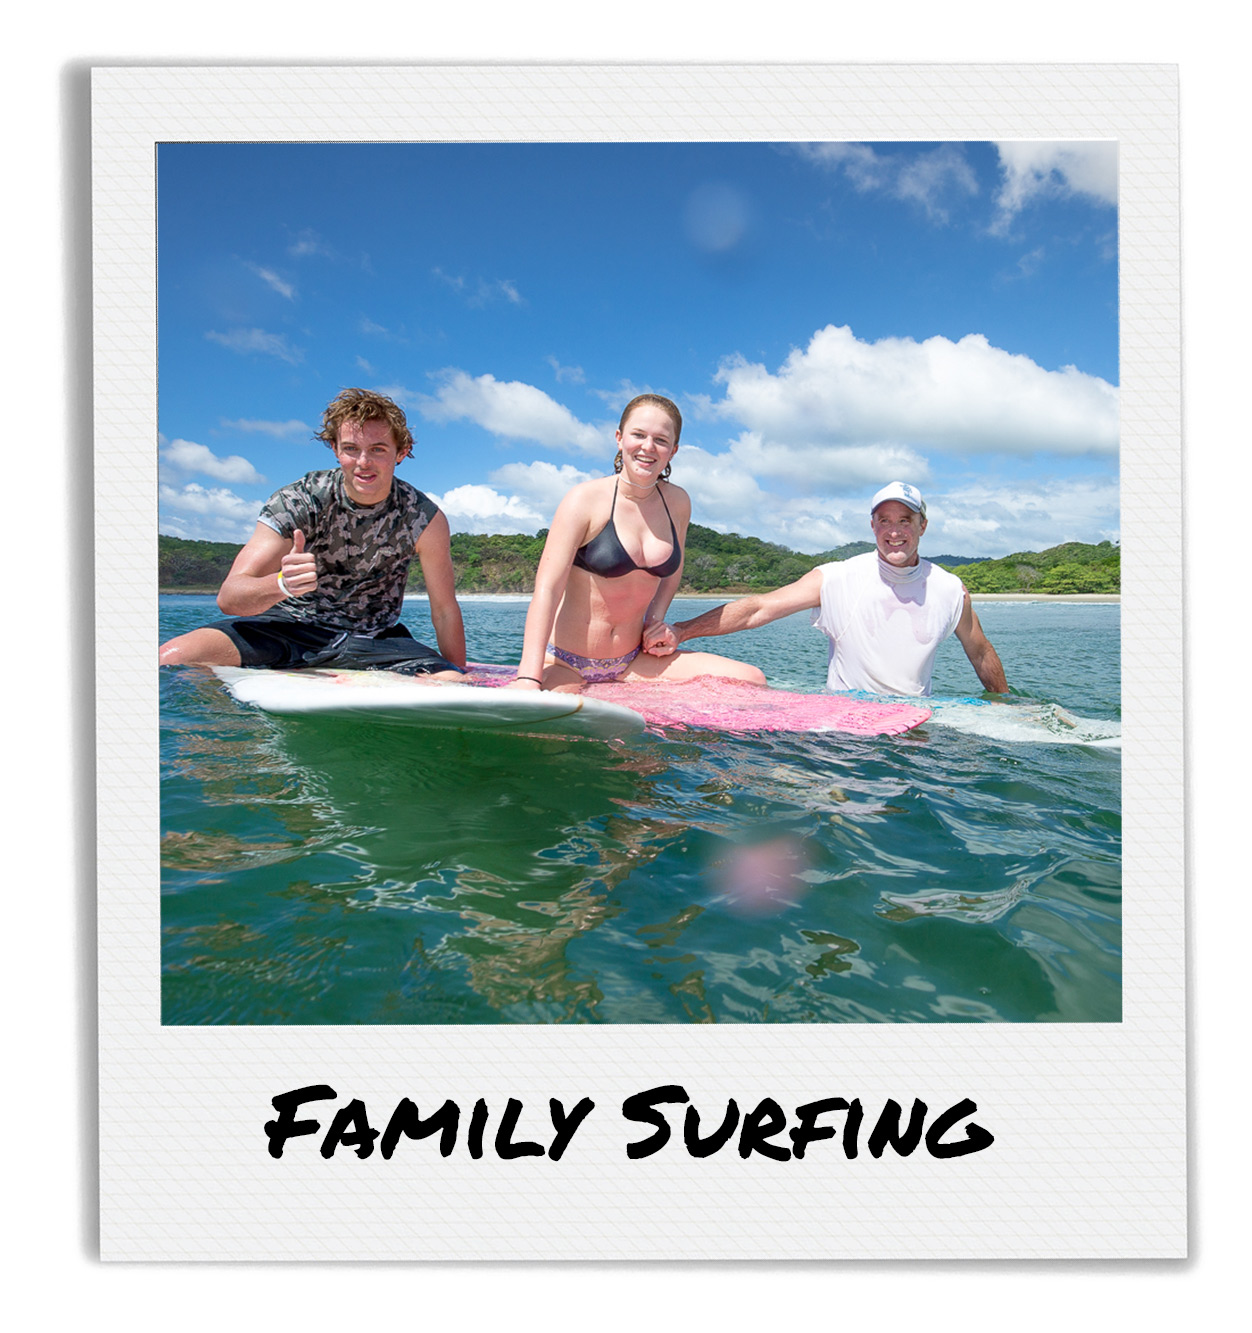 Family Surfing in San Juan Del Sur